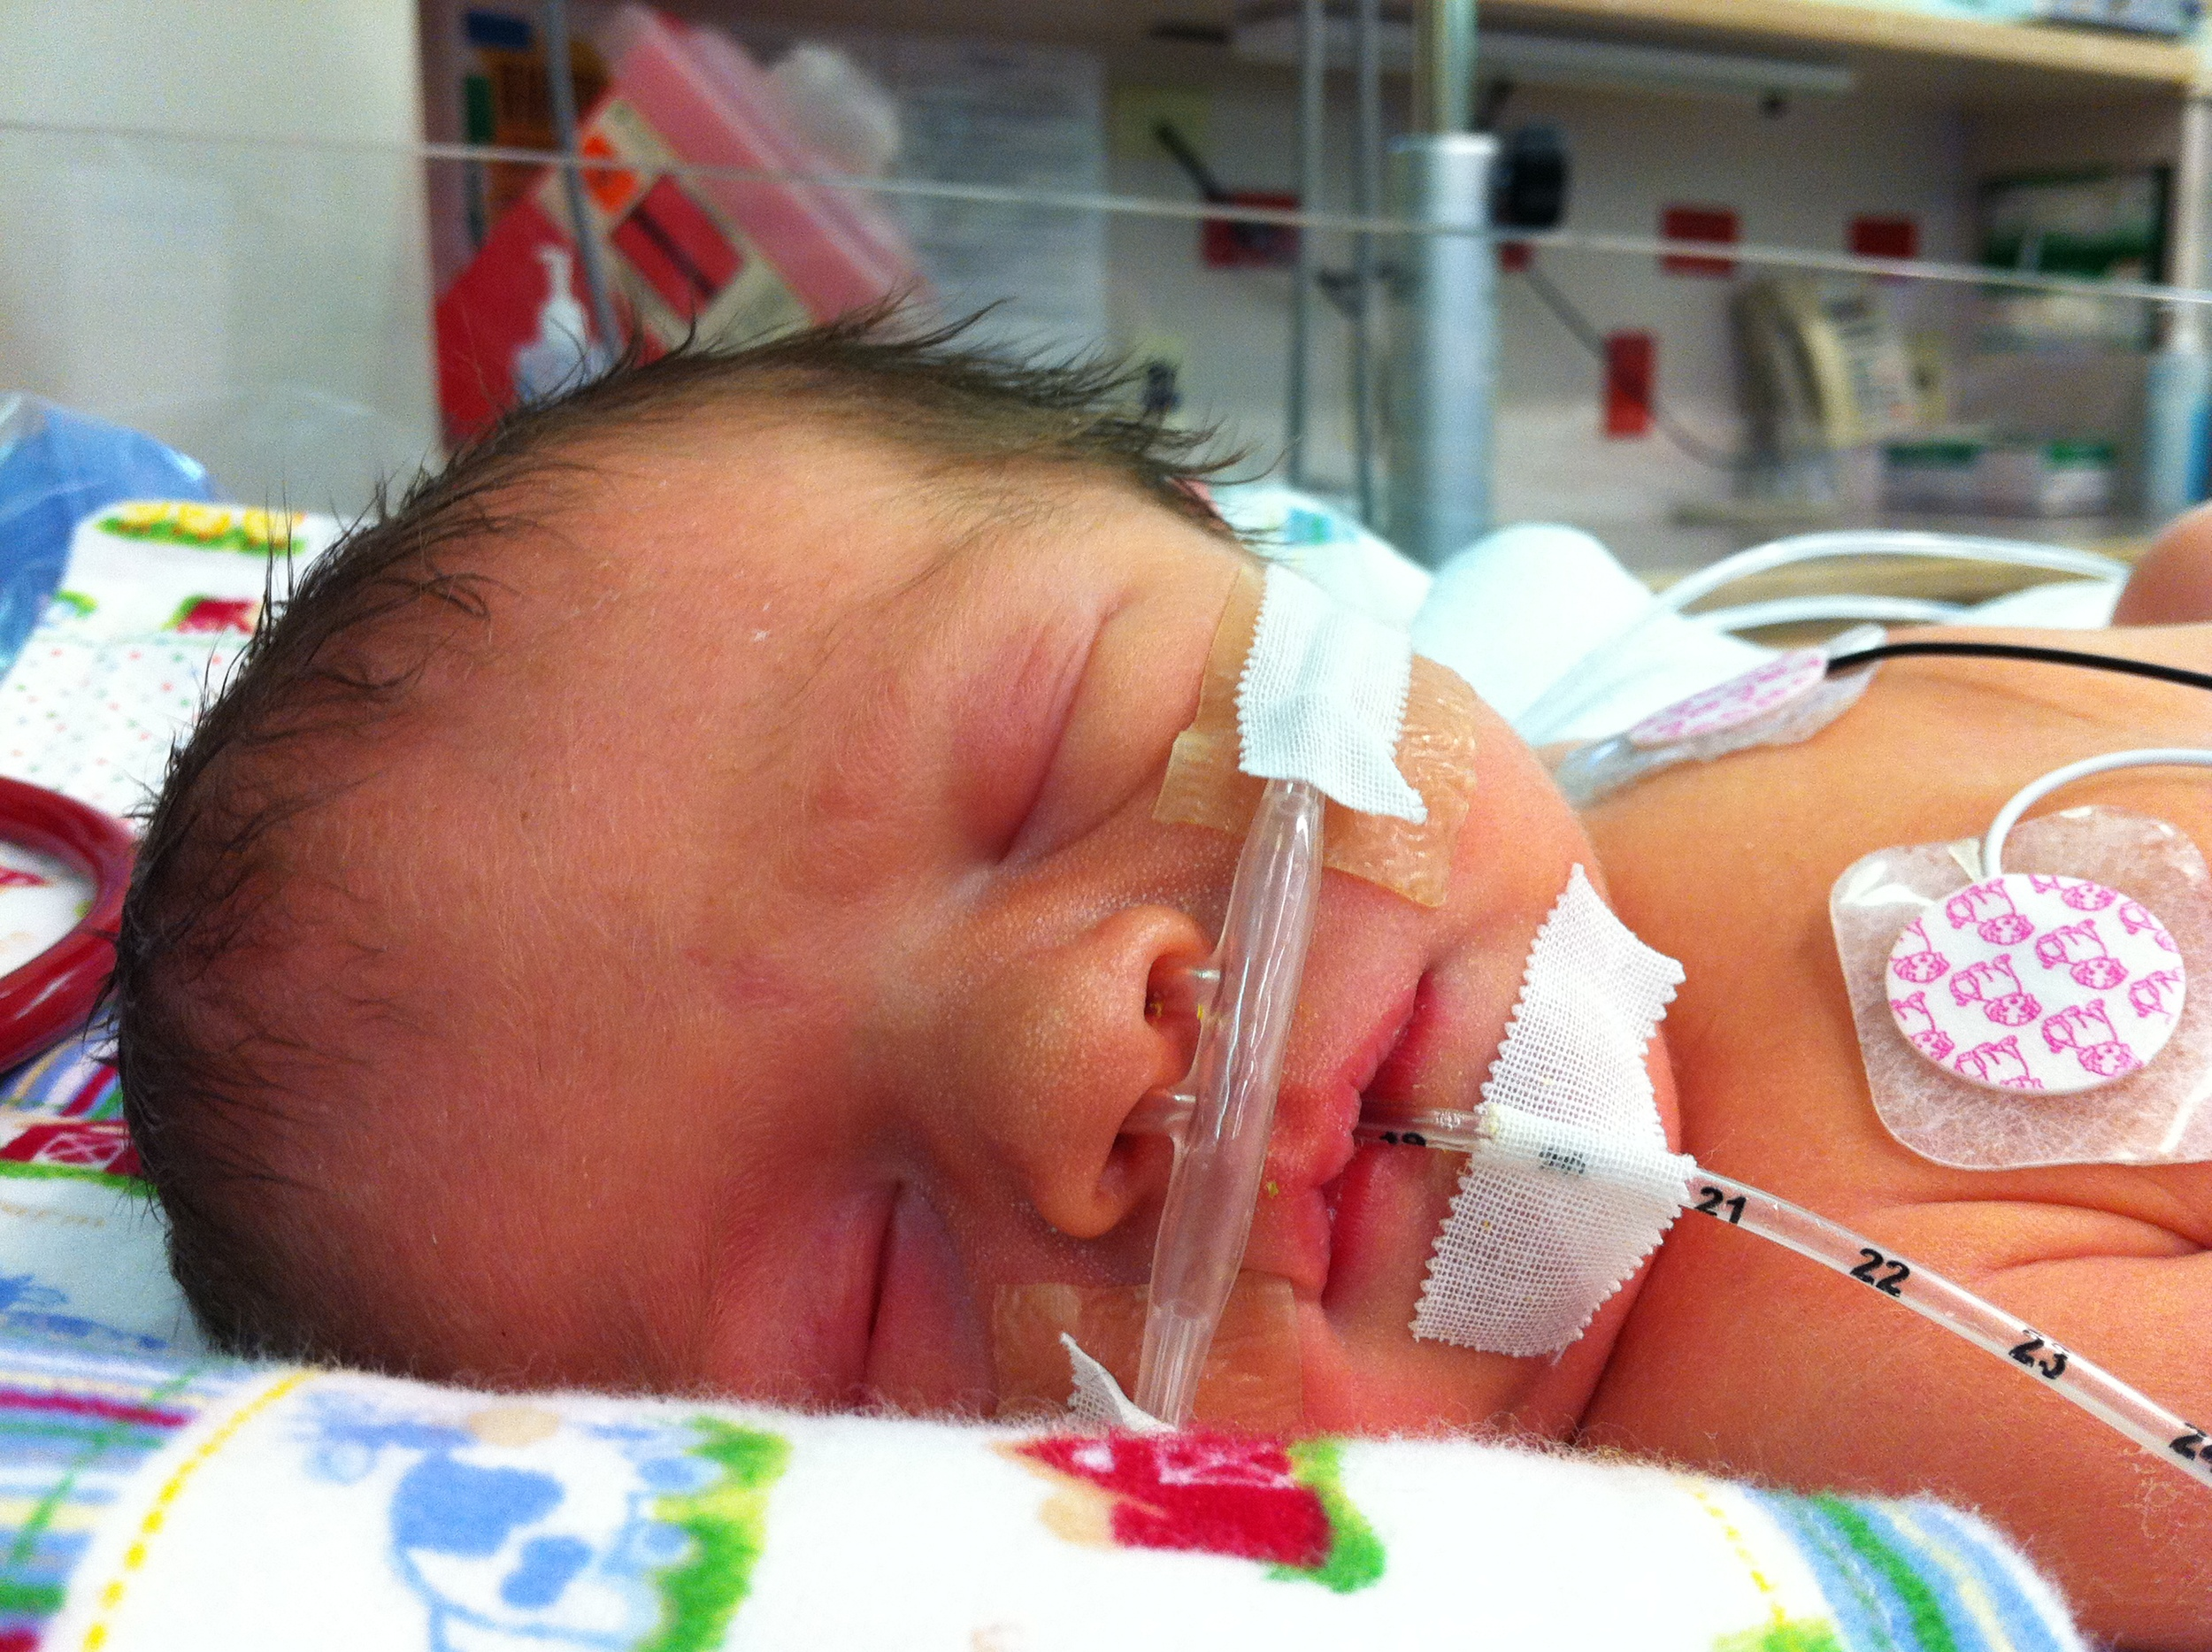 lincoln, daniel, brad, titus, blog, wishard, hospital, premature, baby, premie, boy, son, childbirth, CPAP, feeding, tube, pulse, oximeter